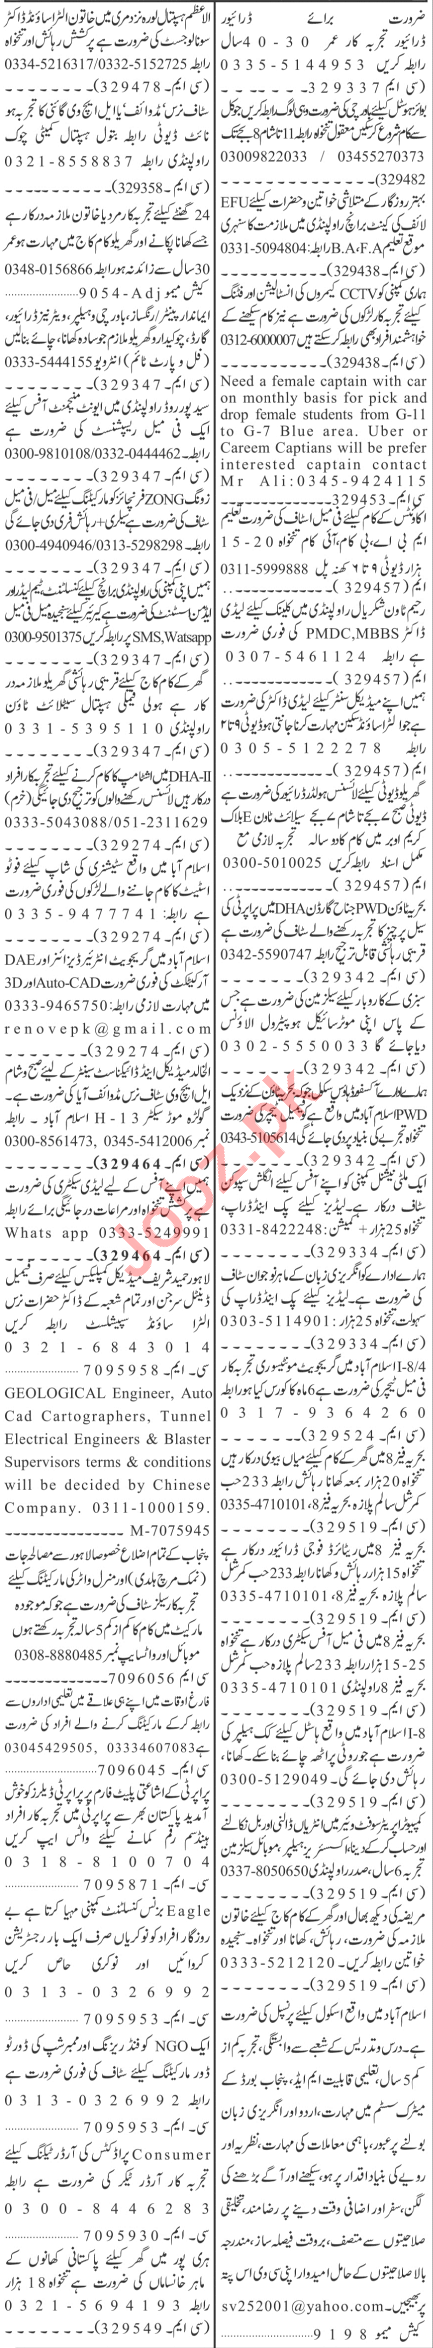 Jang Sunday Classified Ads 7 March 2021 for Office staff